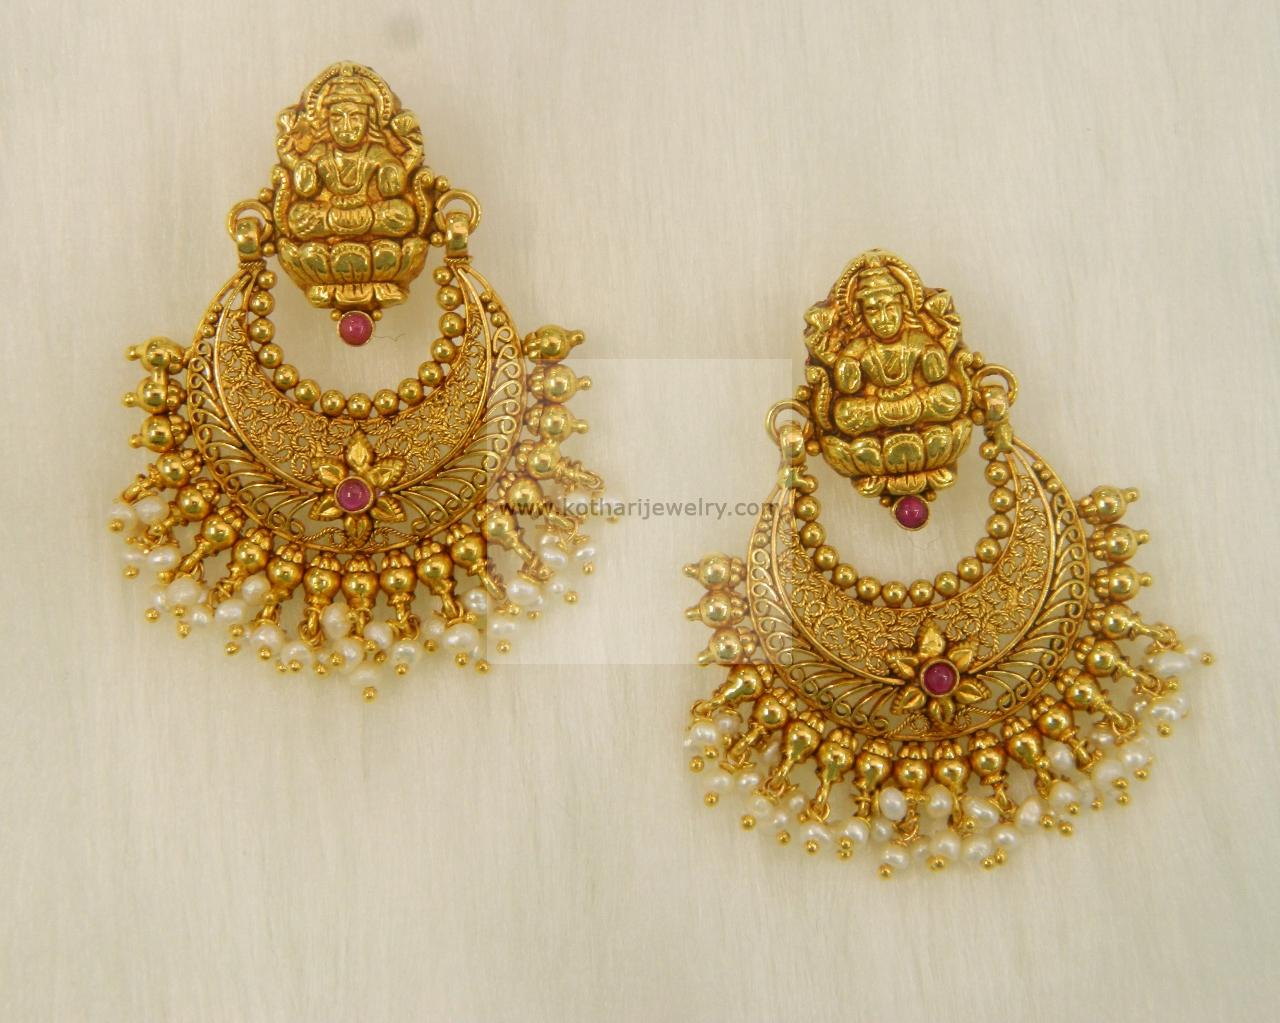 Earrings Jhumkis Chandbali Gold Jewellery